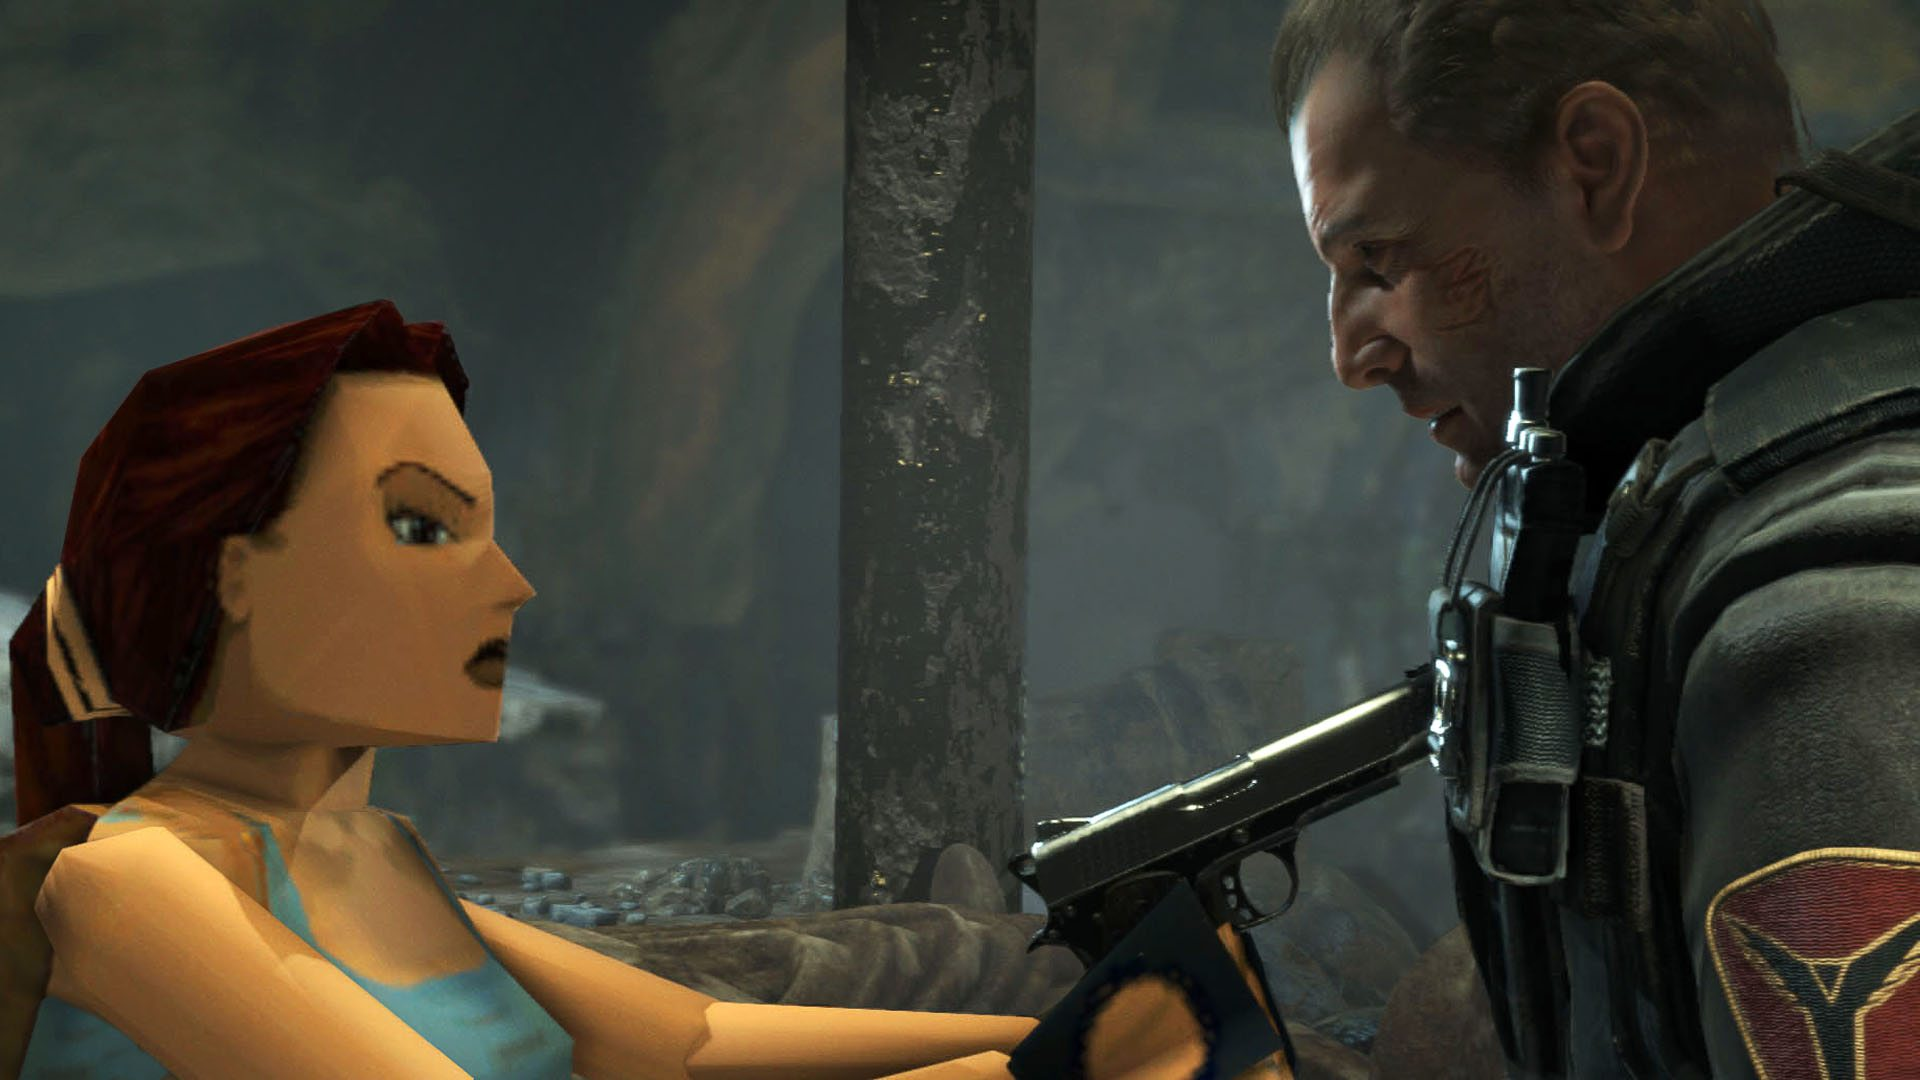 rise-of-the-tomb-raider-20-year-celebration-01-gamesoul